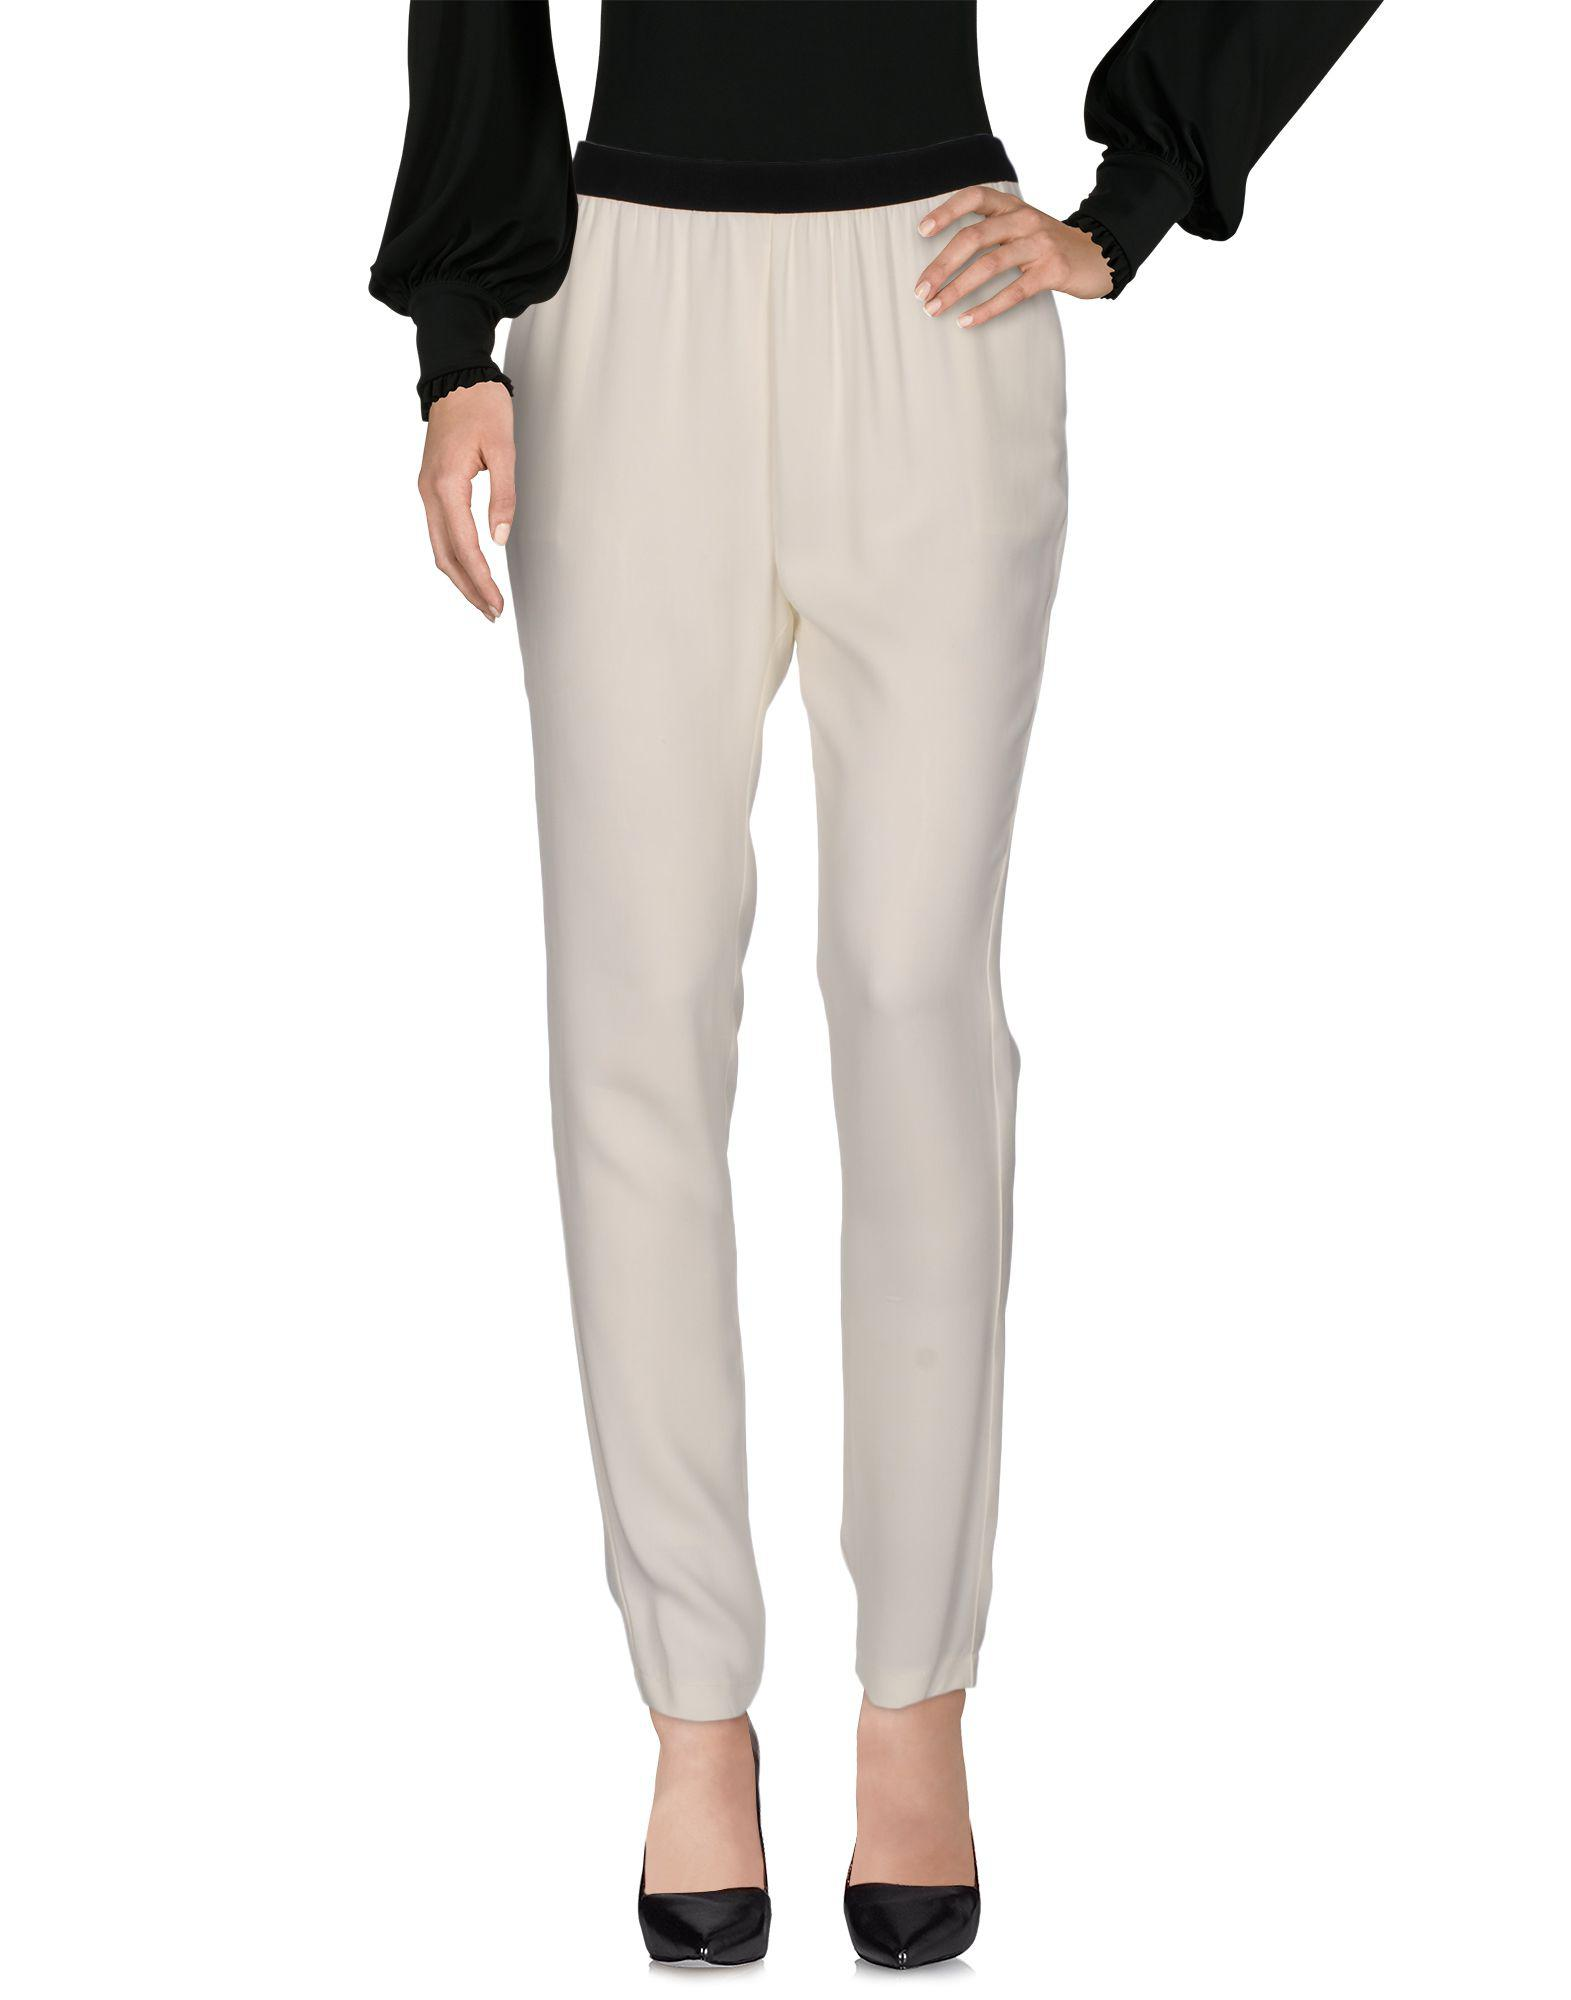 TROUSERS - Casual trousers Antonio Marras New Arrival Sale Online DeXBF1tv8